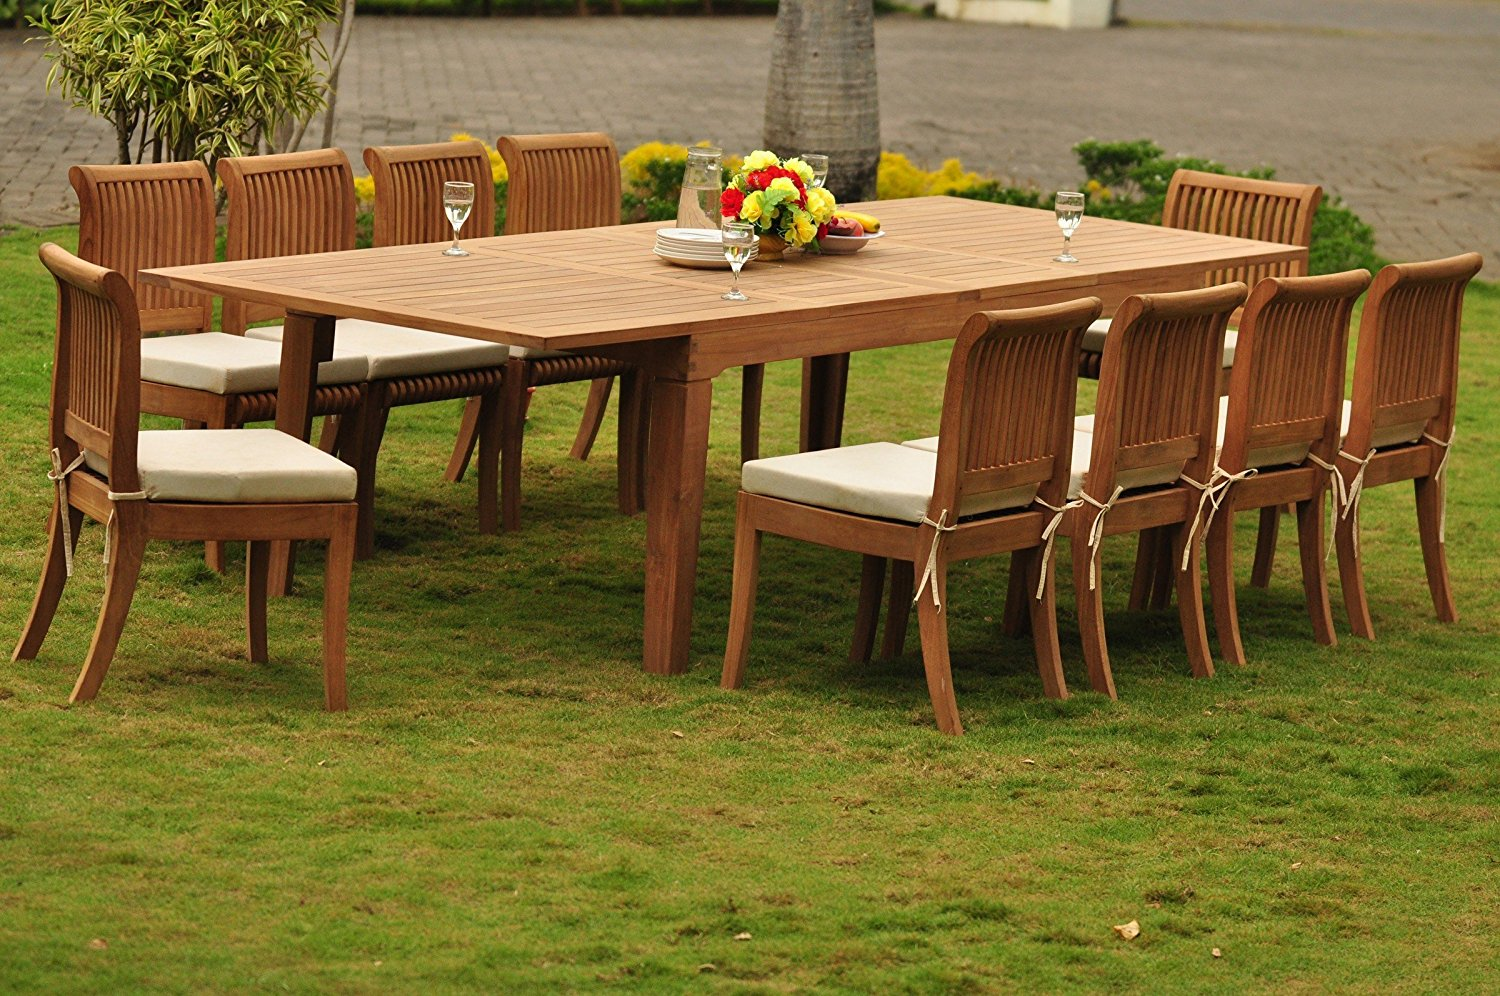 10 Seat Dining Table Set Cheap 10 Seater Dining Table Find 10 Seater Dining Table Deals On